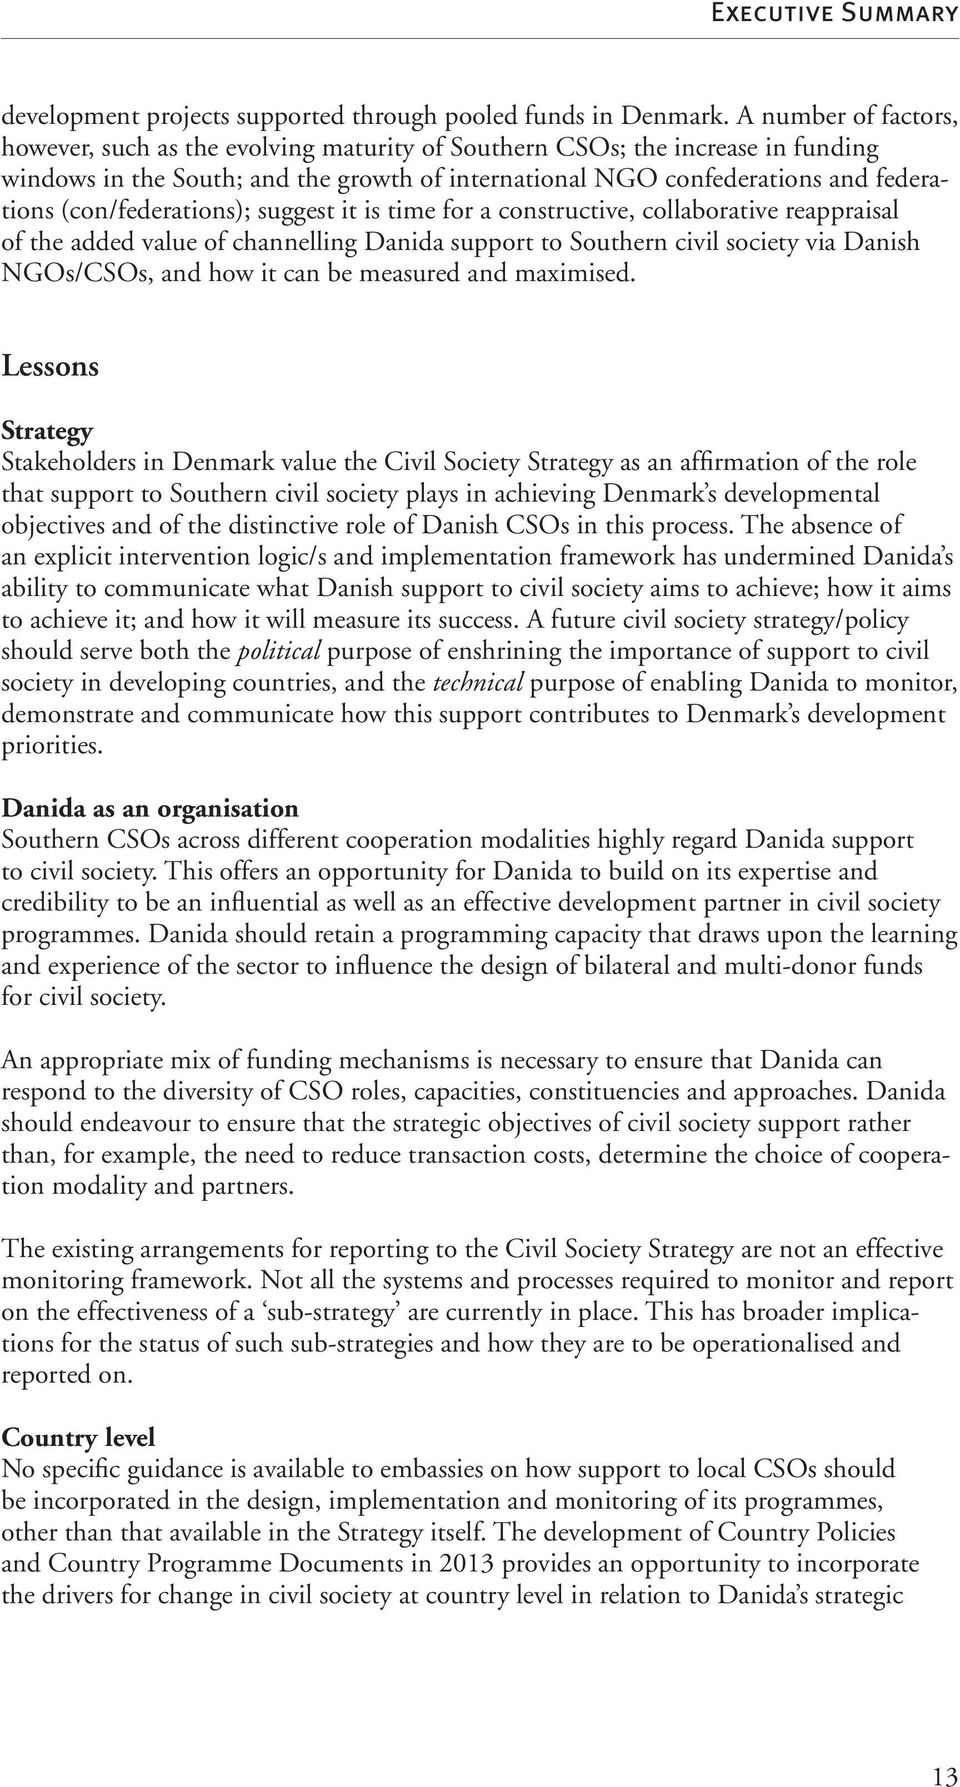 (con/federations); suggest it is time for a constructive, collaborative reappraisal of the added value of channelling Danida support to Southern civil society via Danish NGOs/CSOs, and how it can be